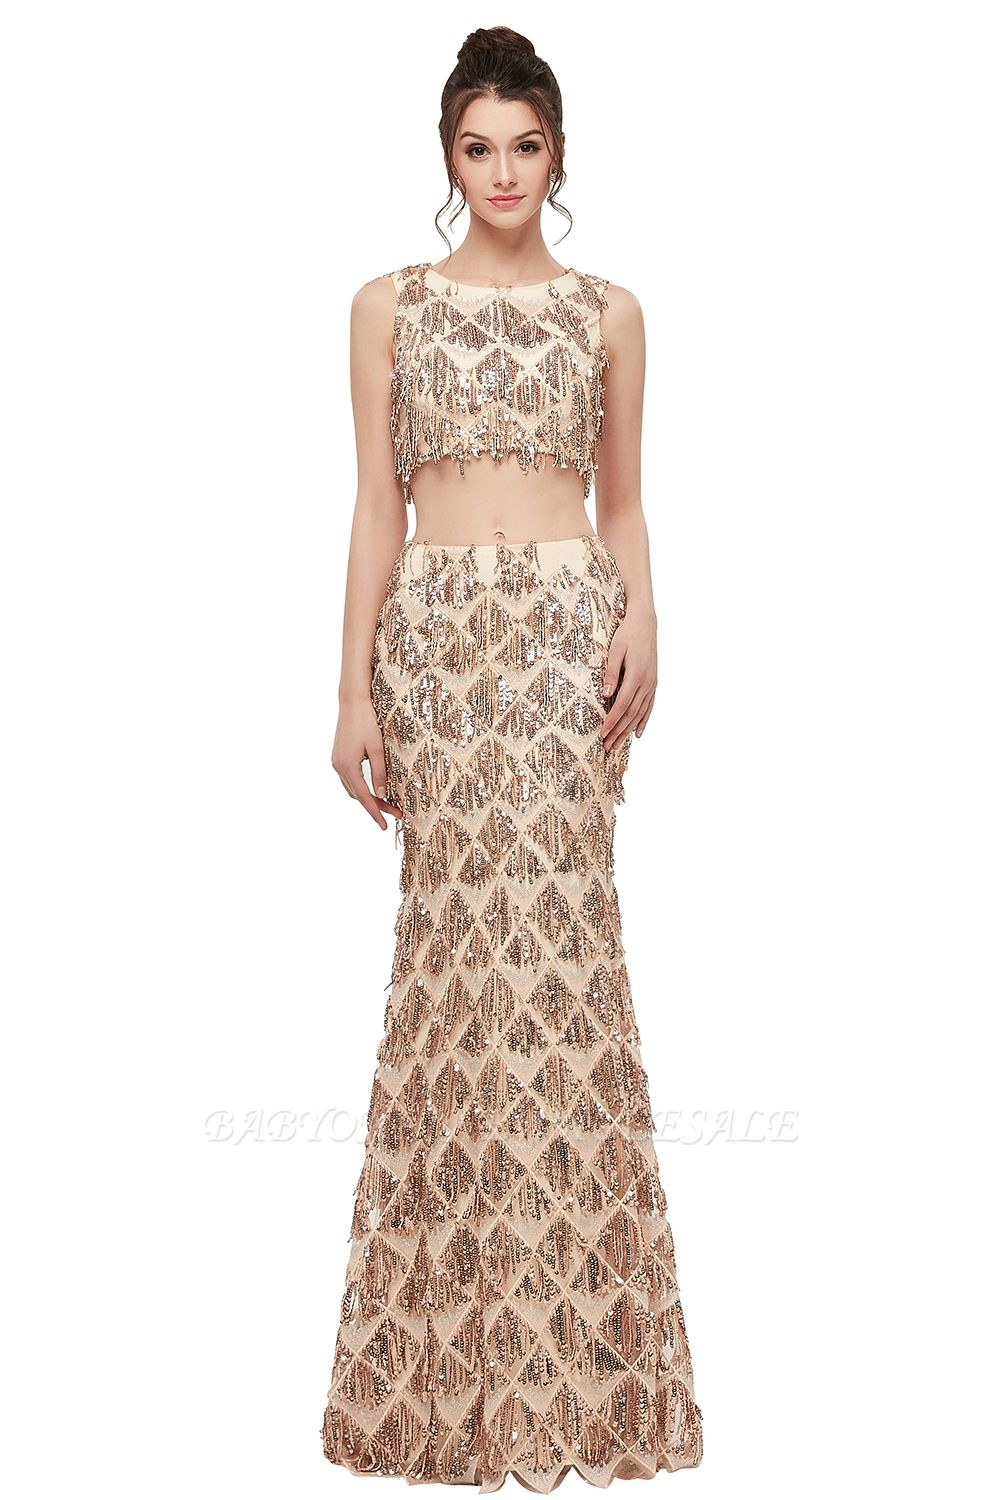 Zenia mermaid twopiece sleeveless floor length sequined champagne